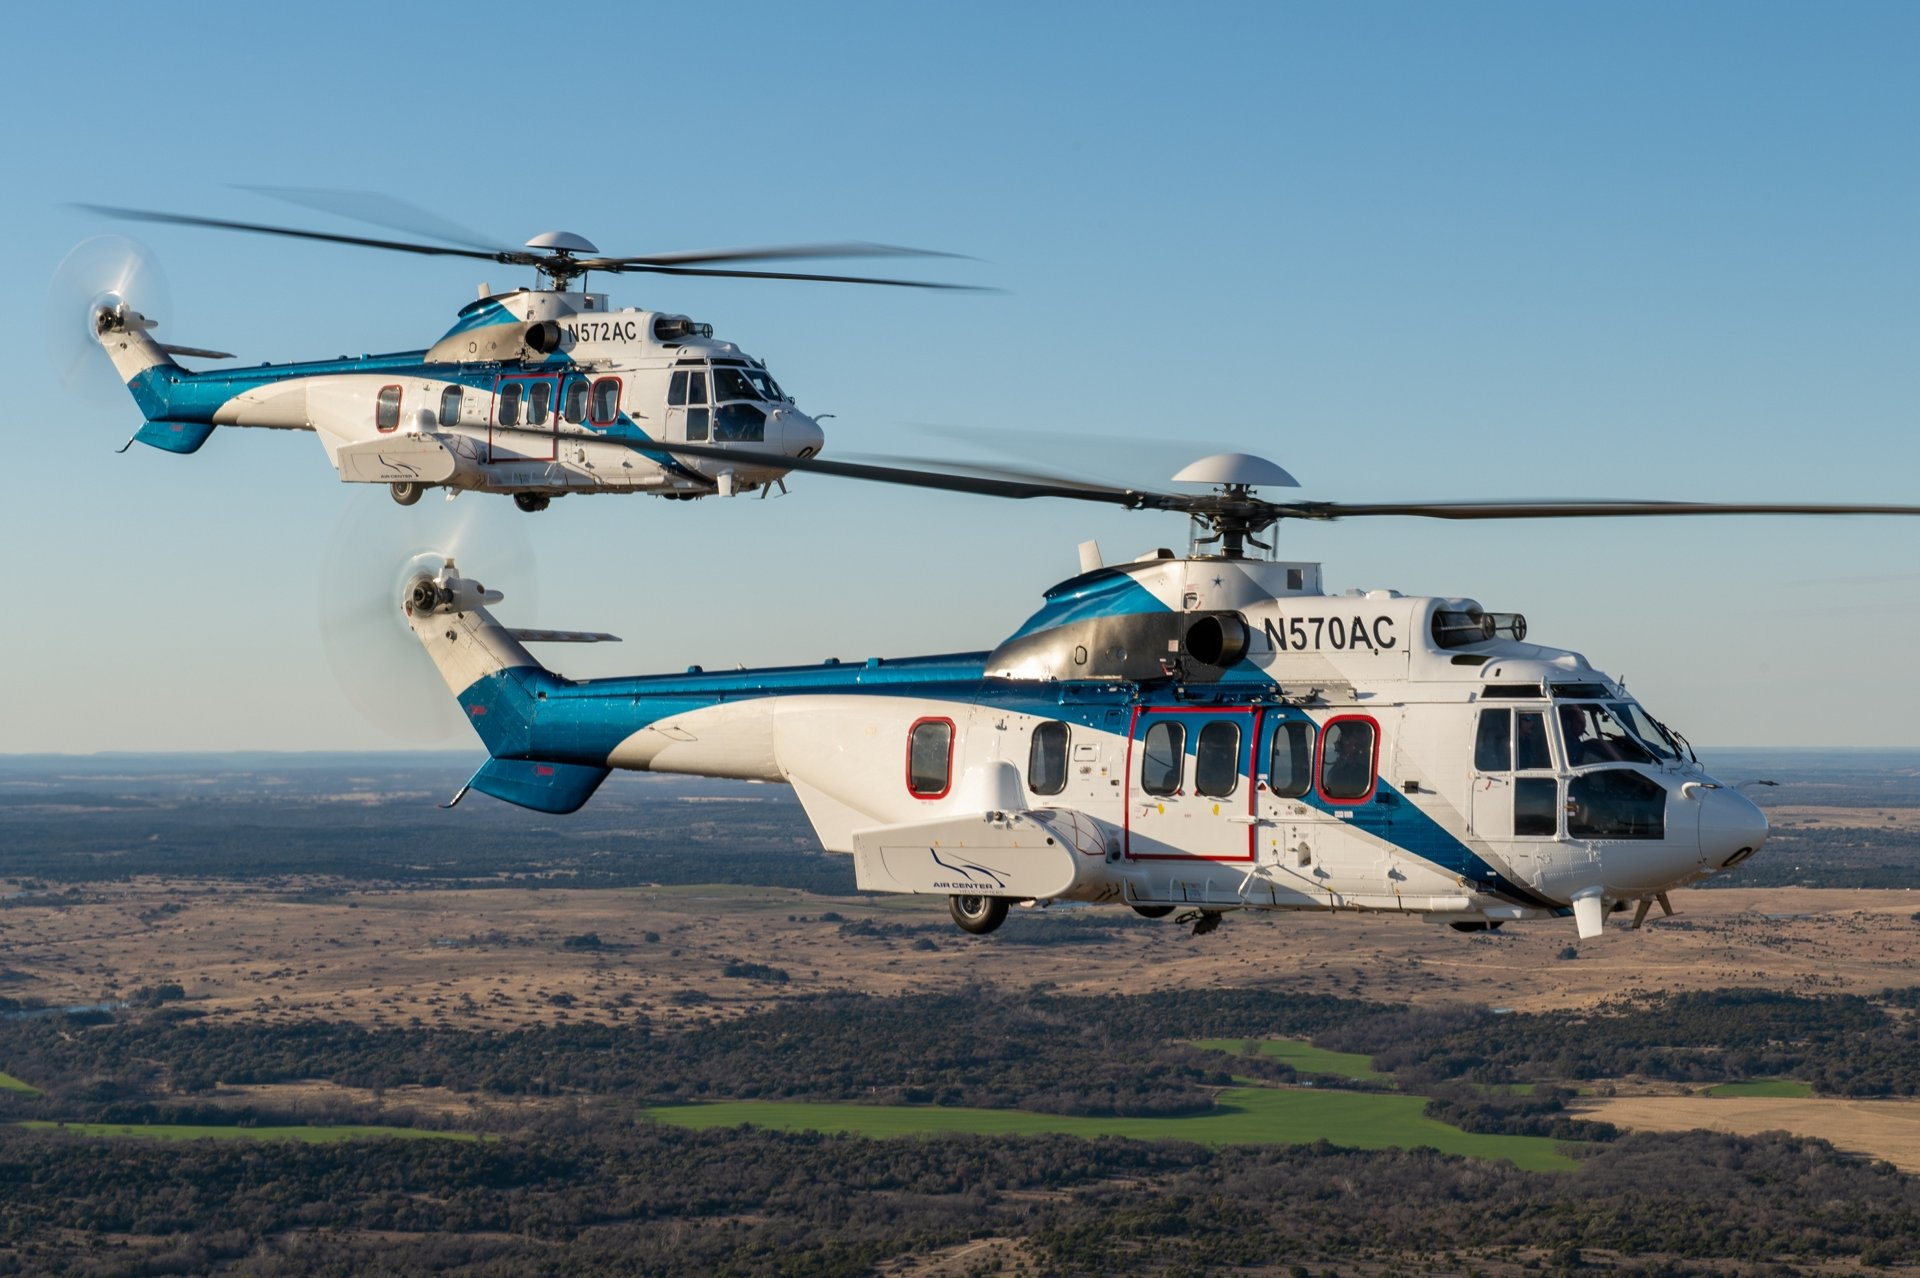 Air Center Helicopters, Inc (ACHI) has signed a set of HCare Smart parts-by-the-hour contracts for 10 of its Airbus H225 helicopters.